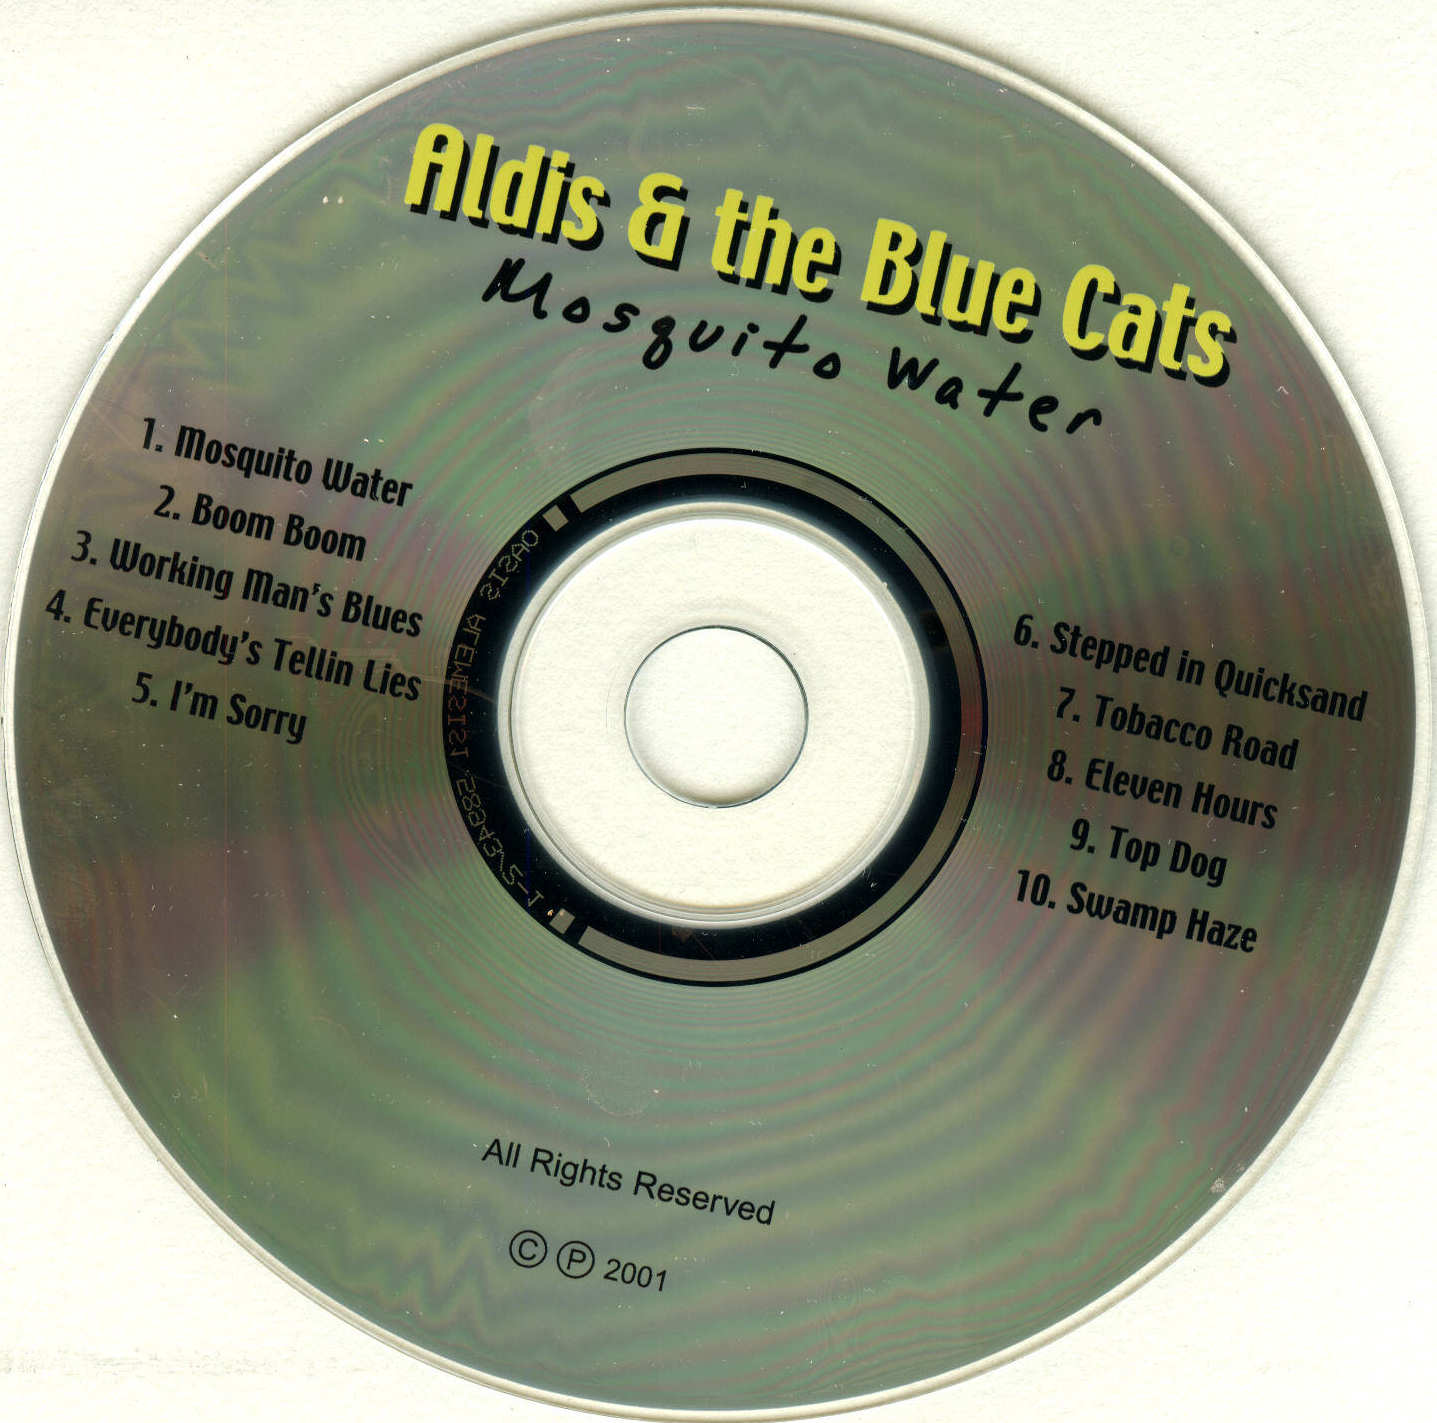 COVERS BOX SK ::: aldis & the blue cats blues band